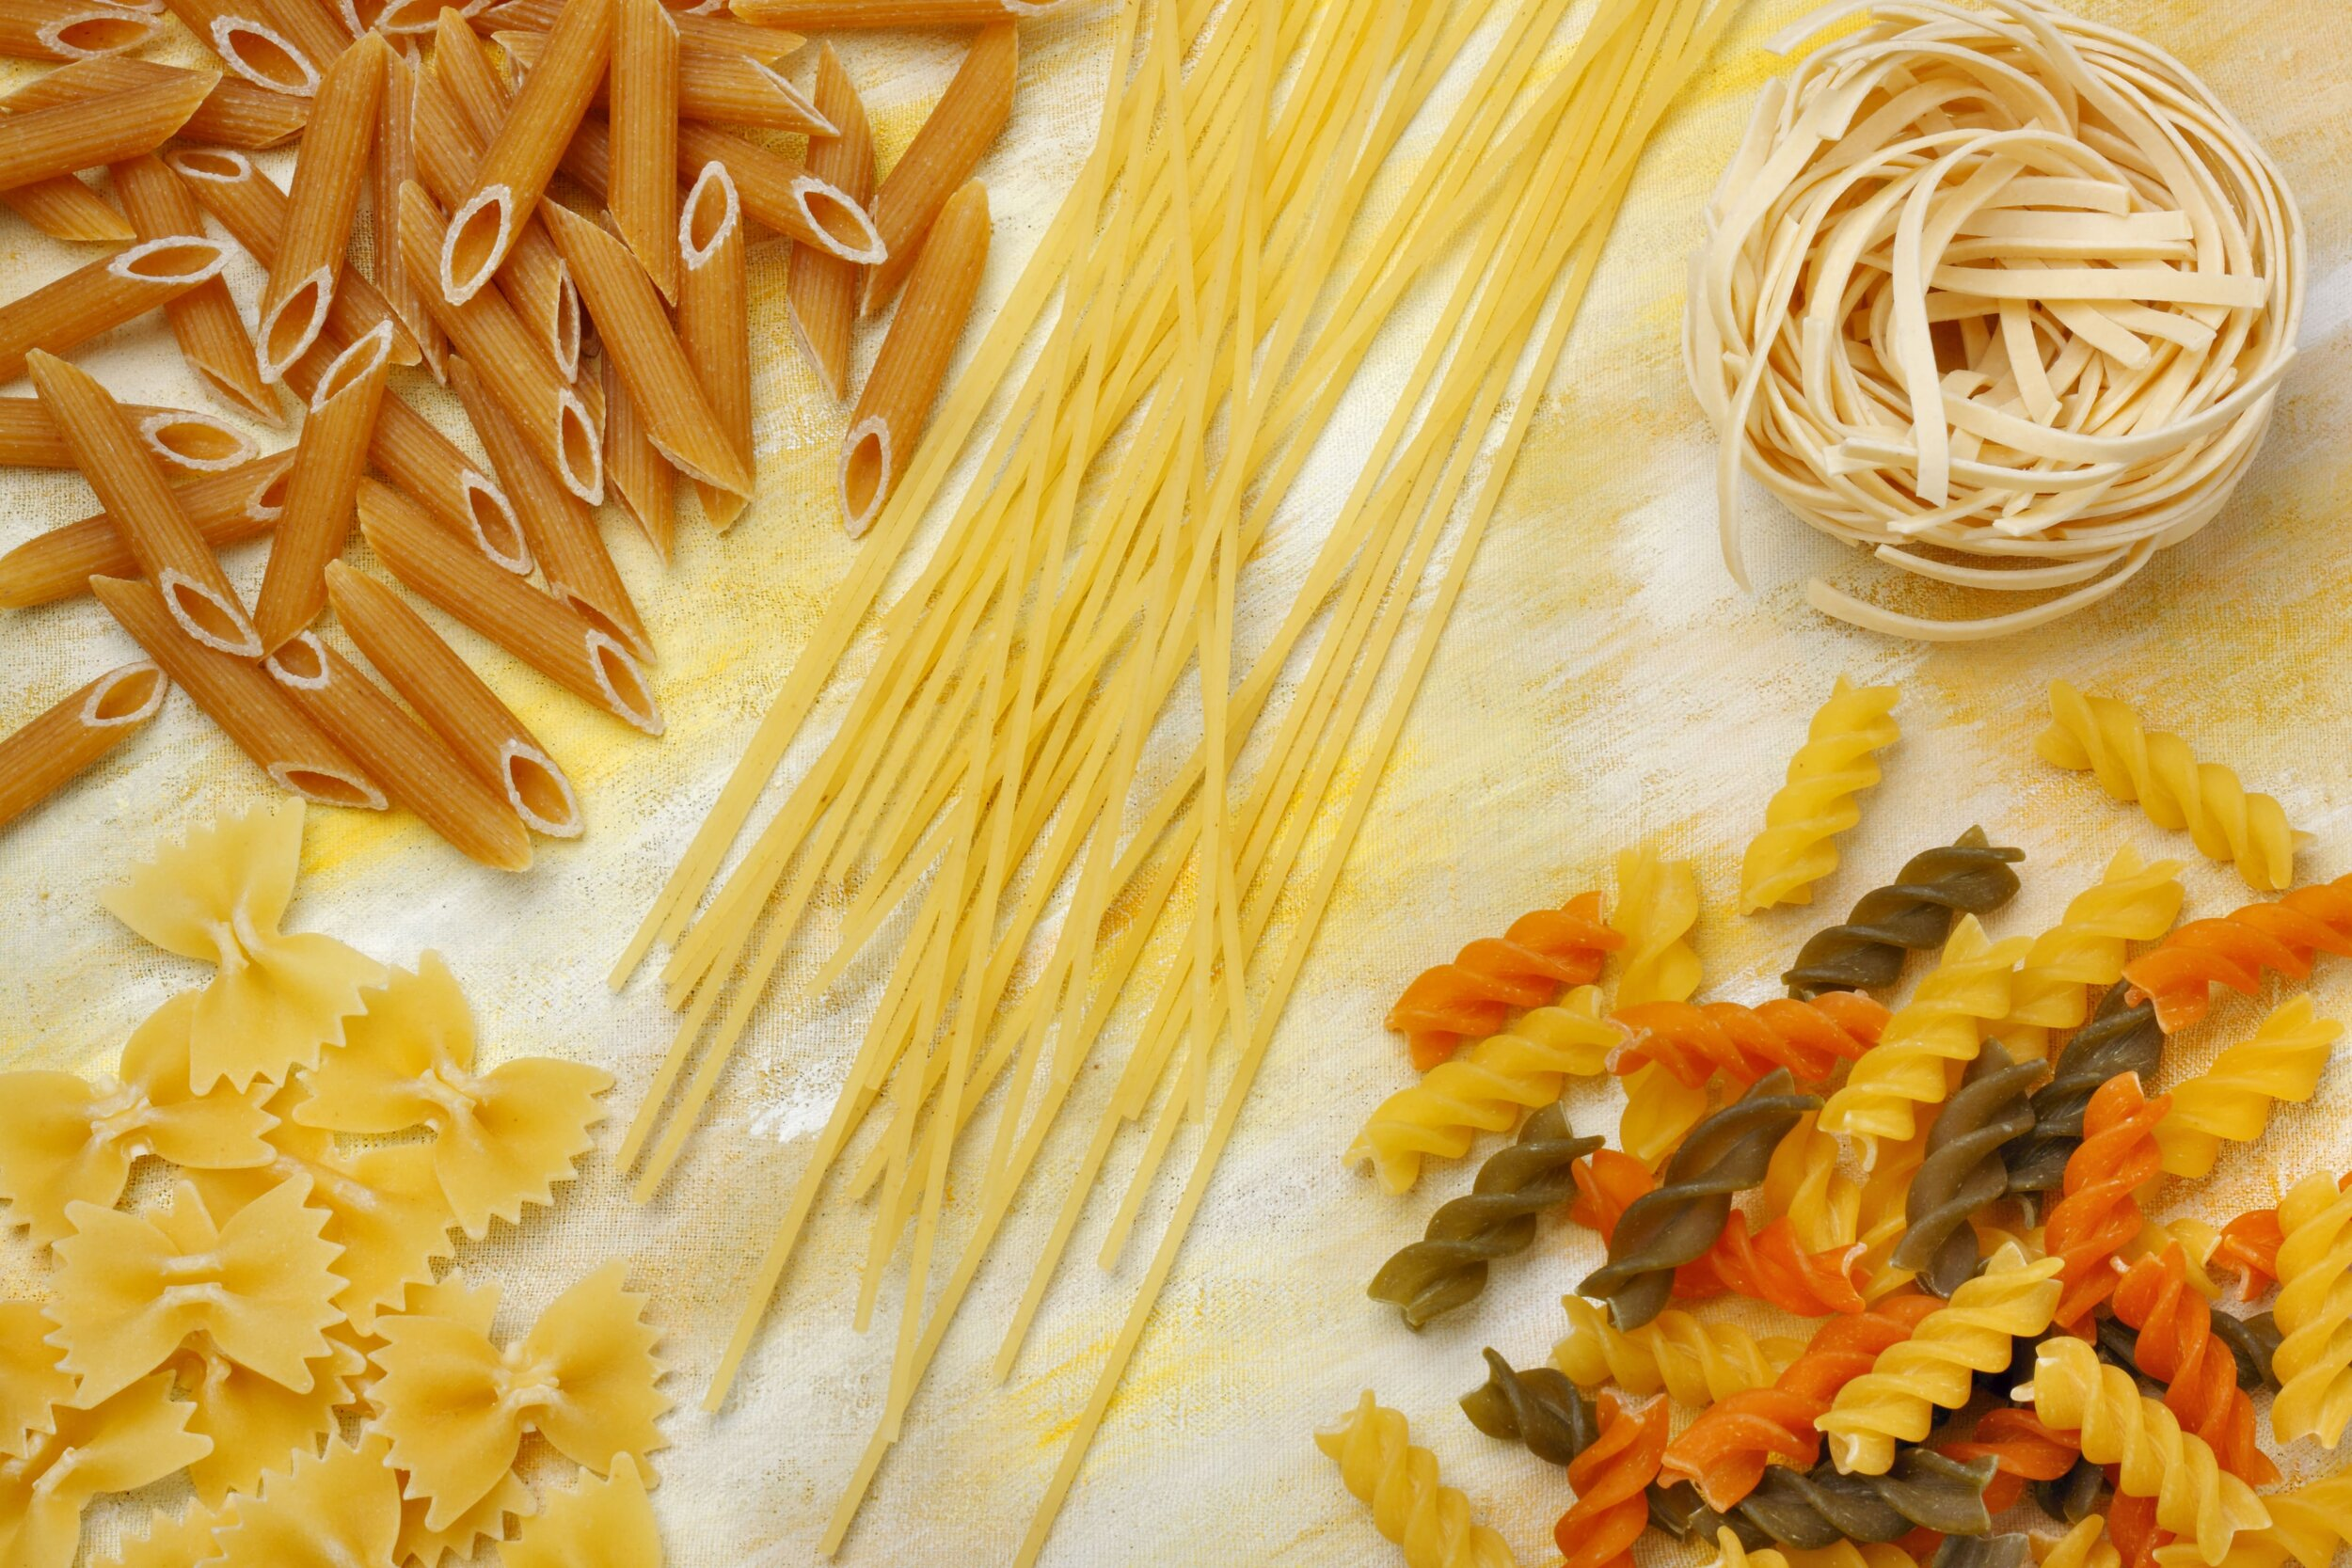 Dried pastas in Italy are most often vegan.